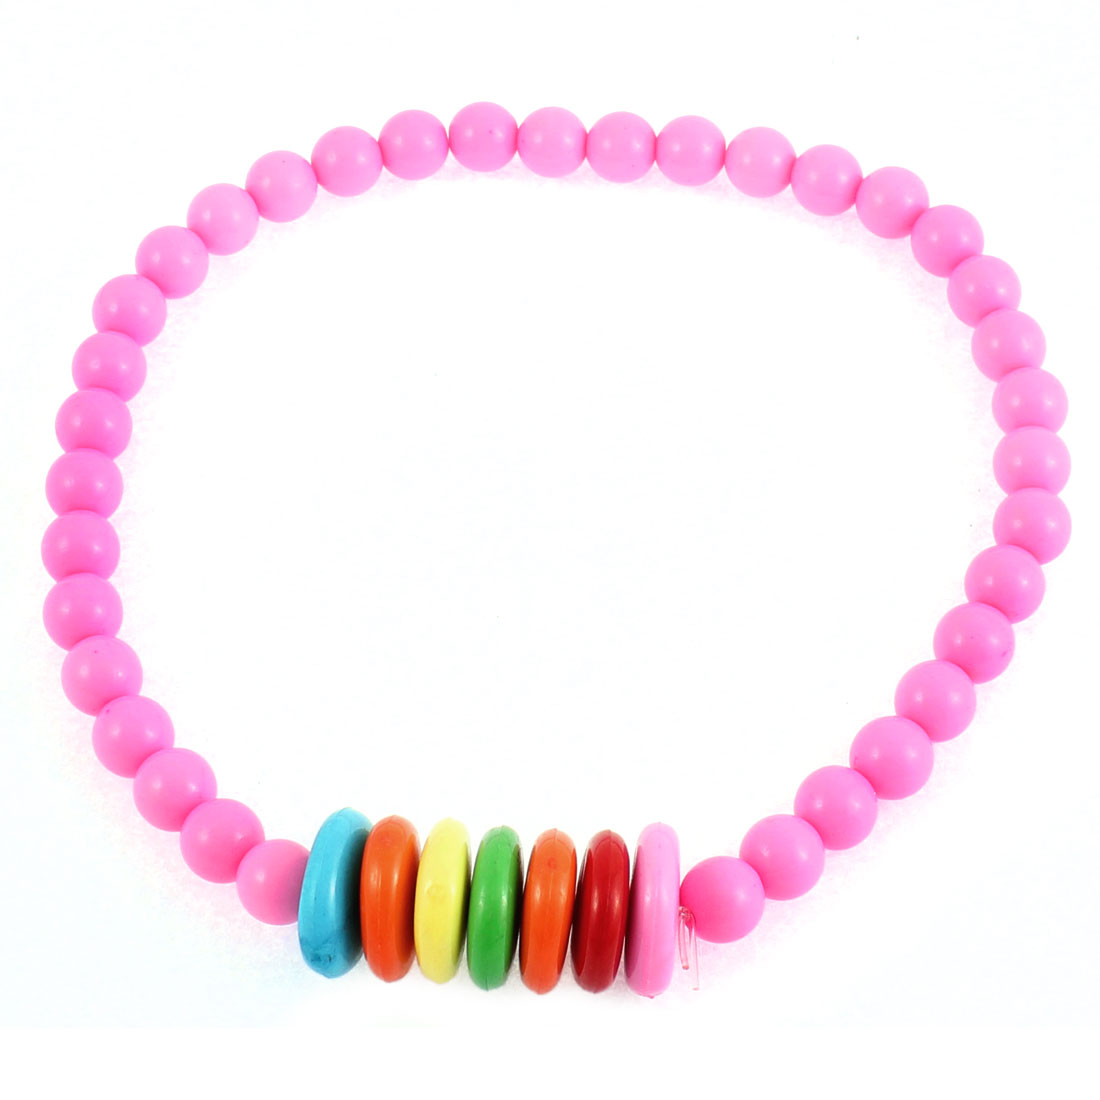 Woman Lady Plastic Flat Stone Decor Bead Ball Chain Stretchy Necklace Fuchsia